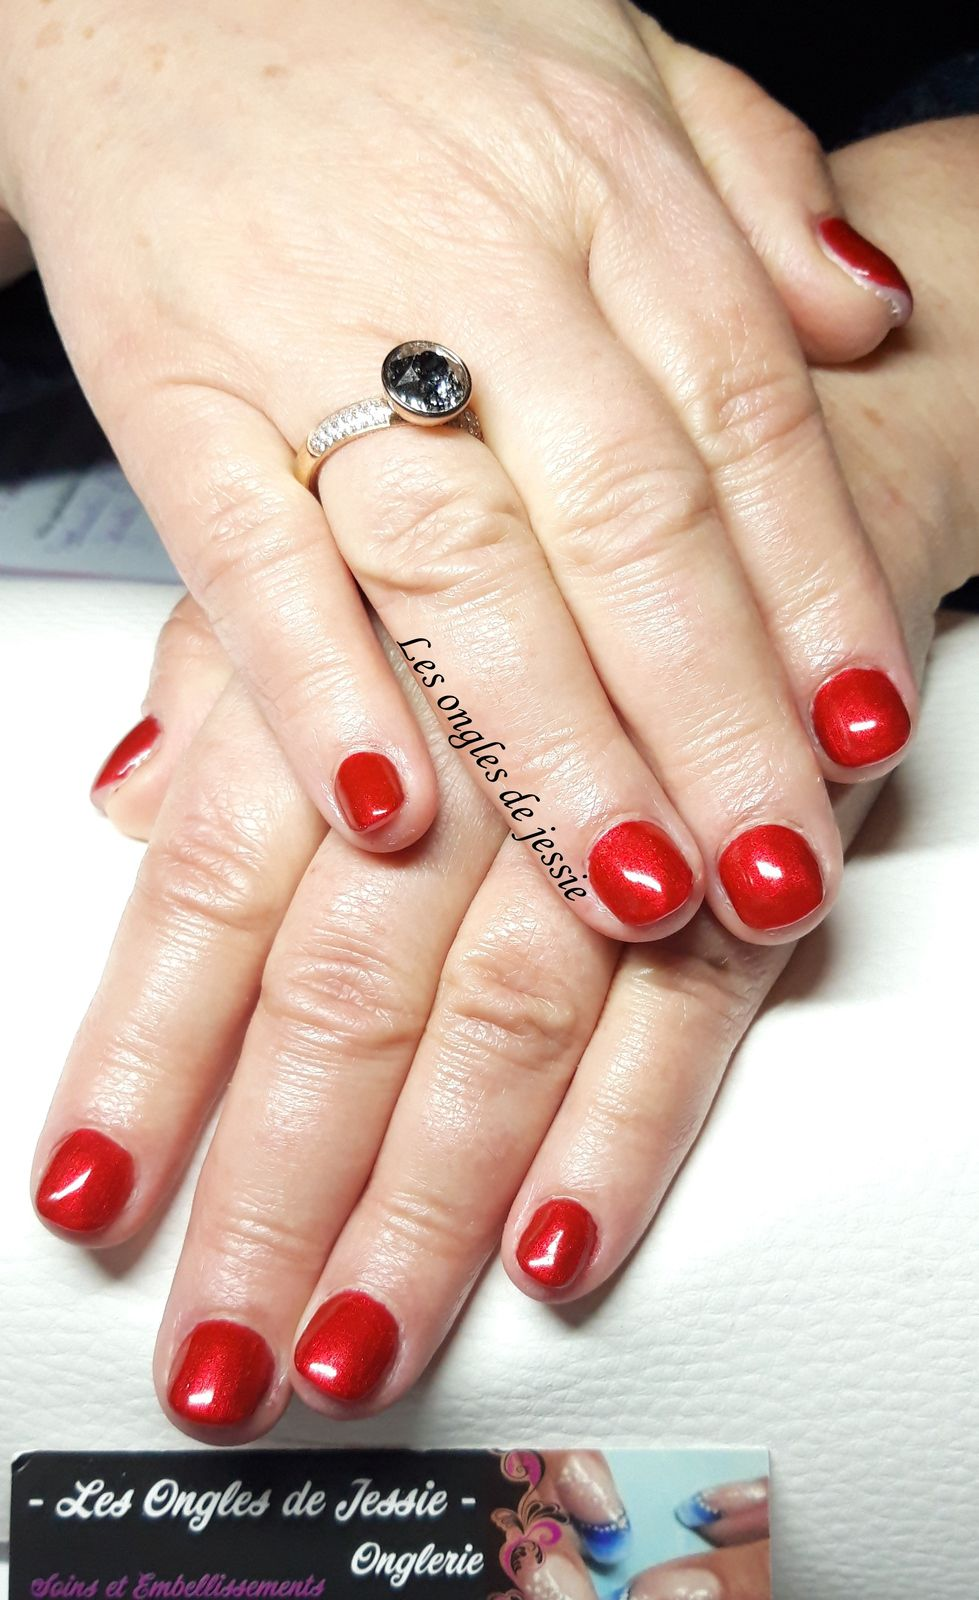 vernis rouge sur ongles courts - 2 poses